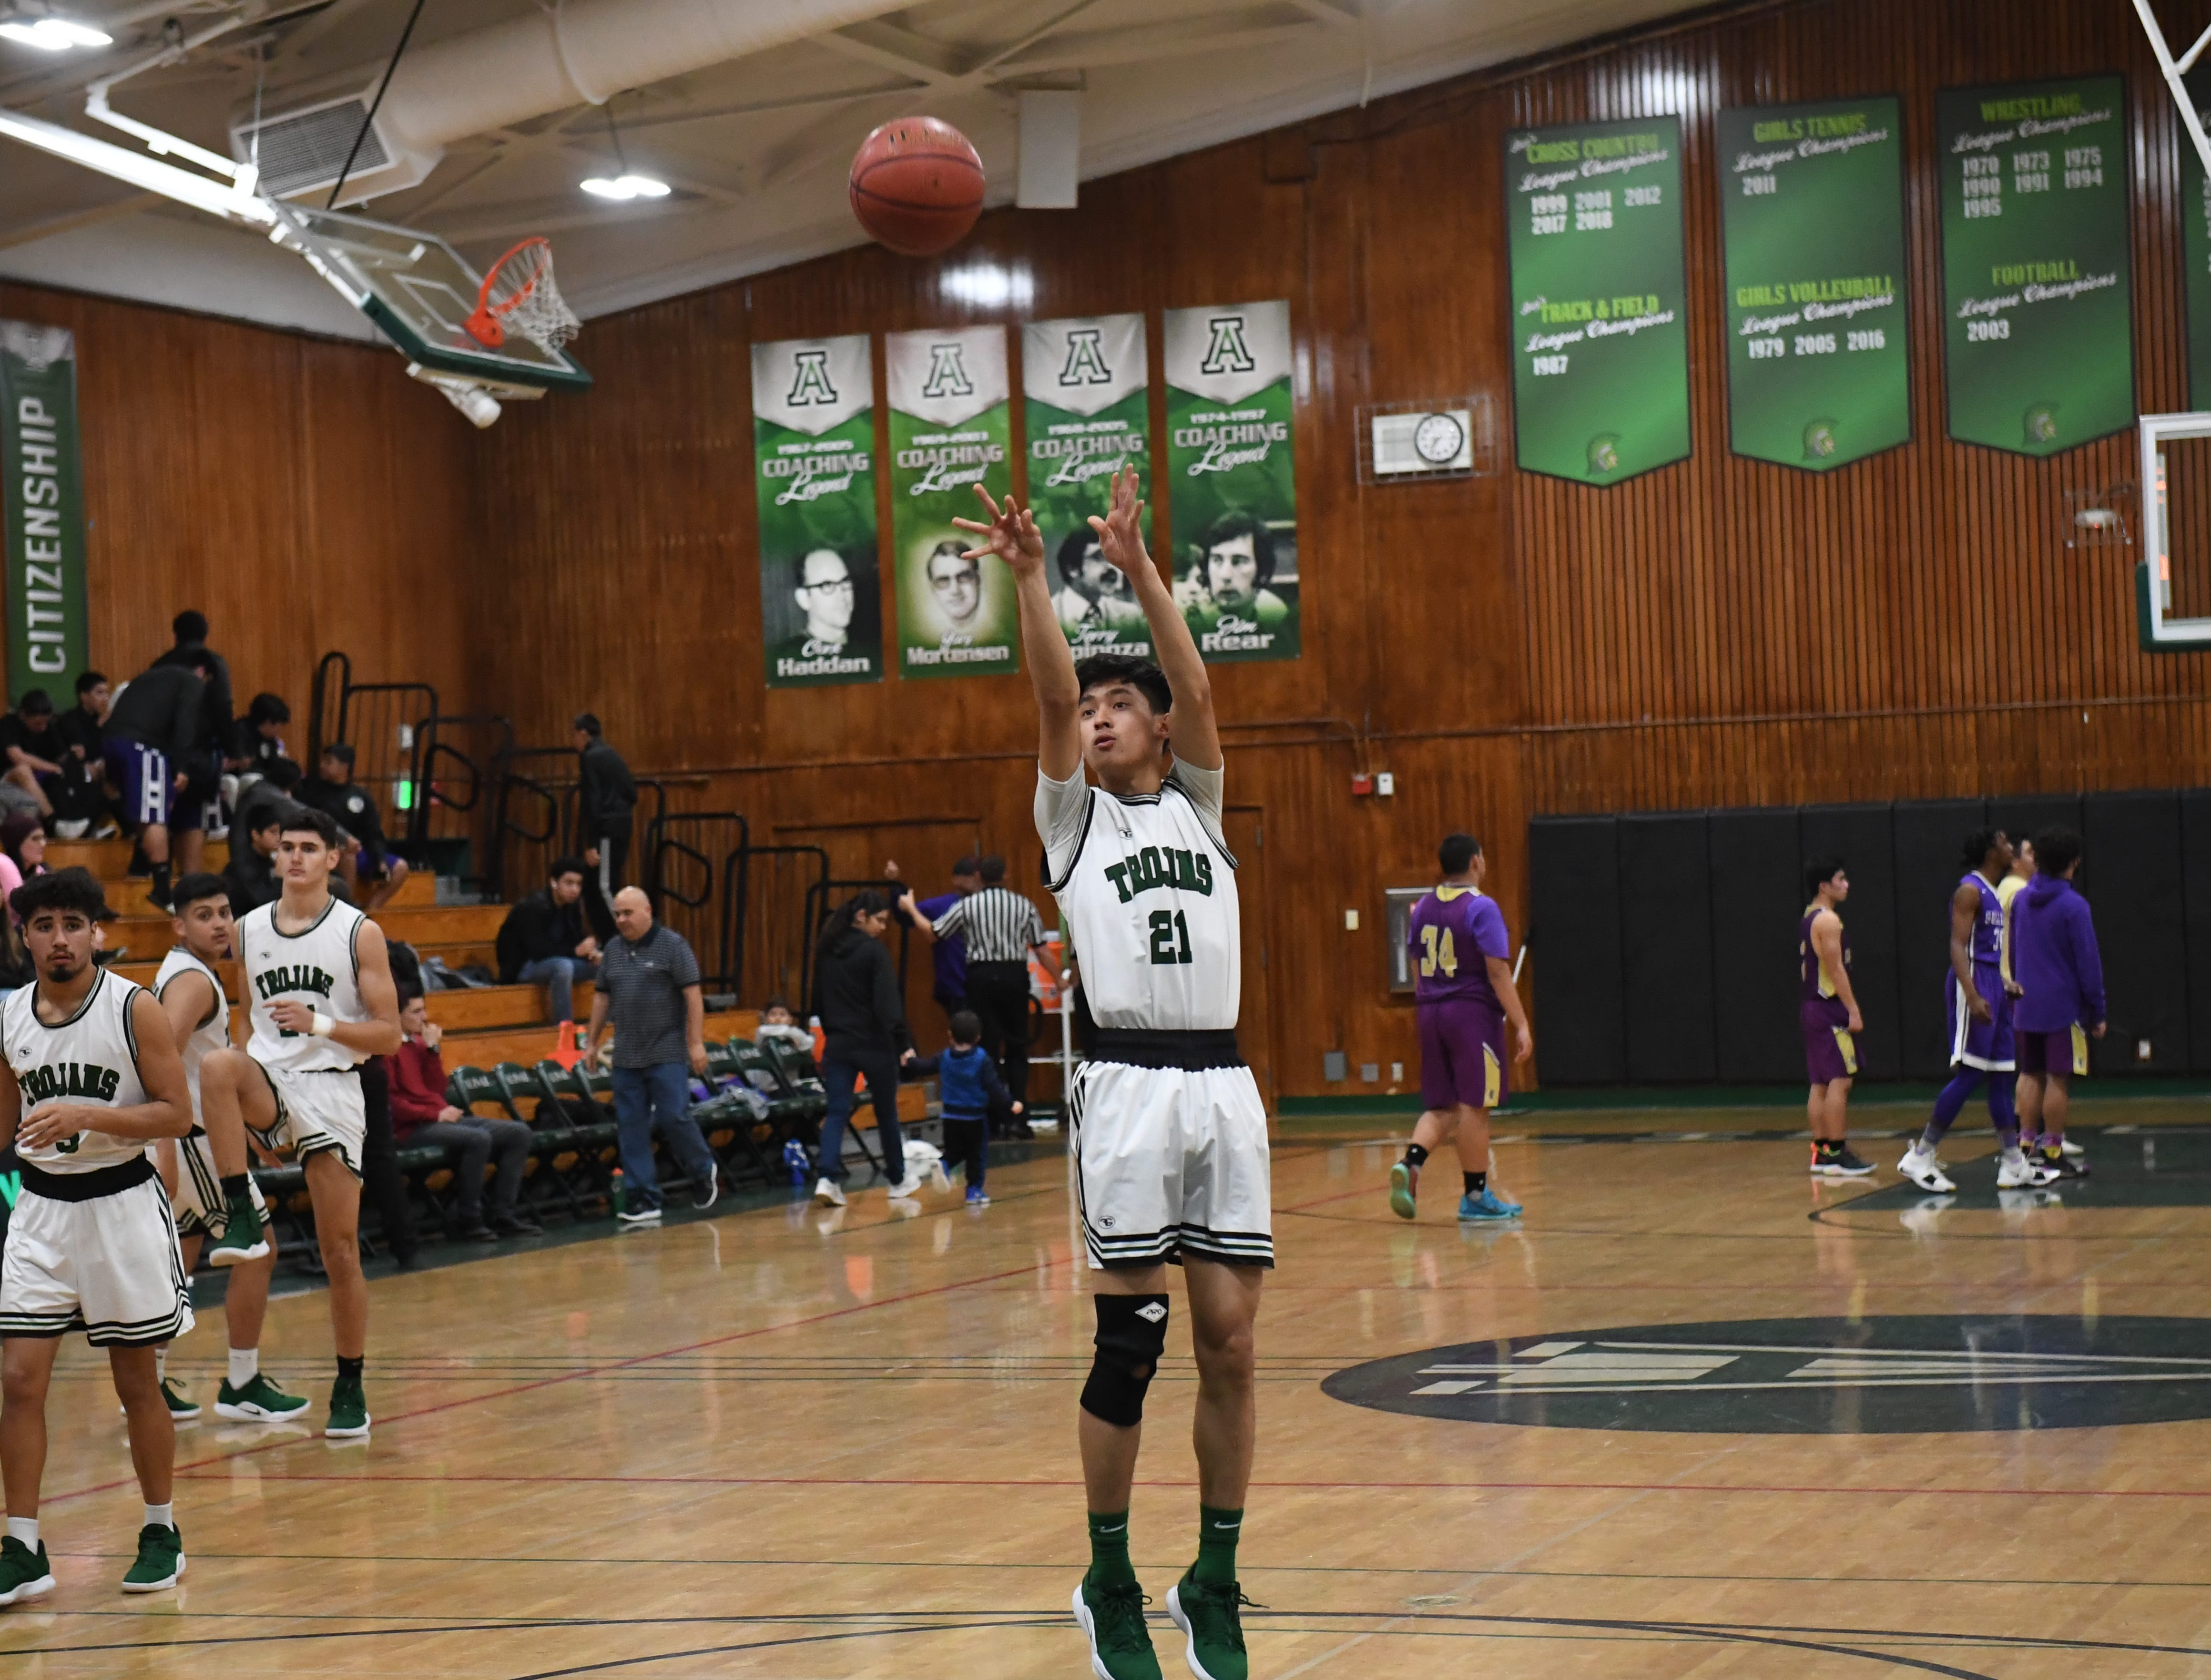 Alisal guard Shawn Vuoung (21) shoots a jumper from the free throw line.